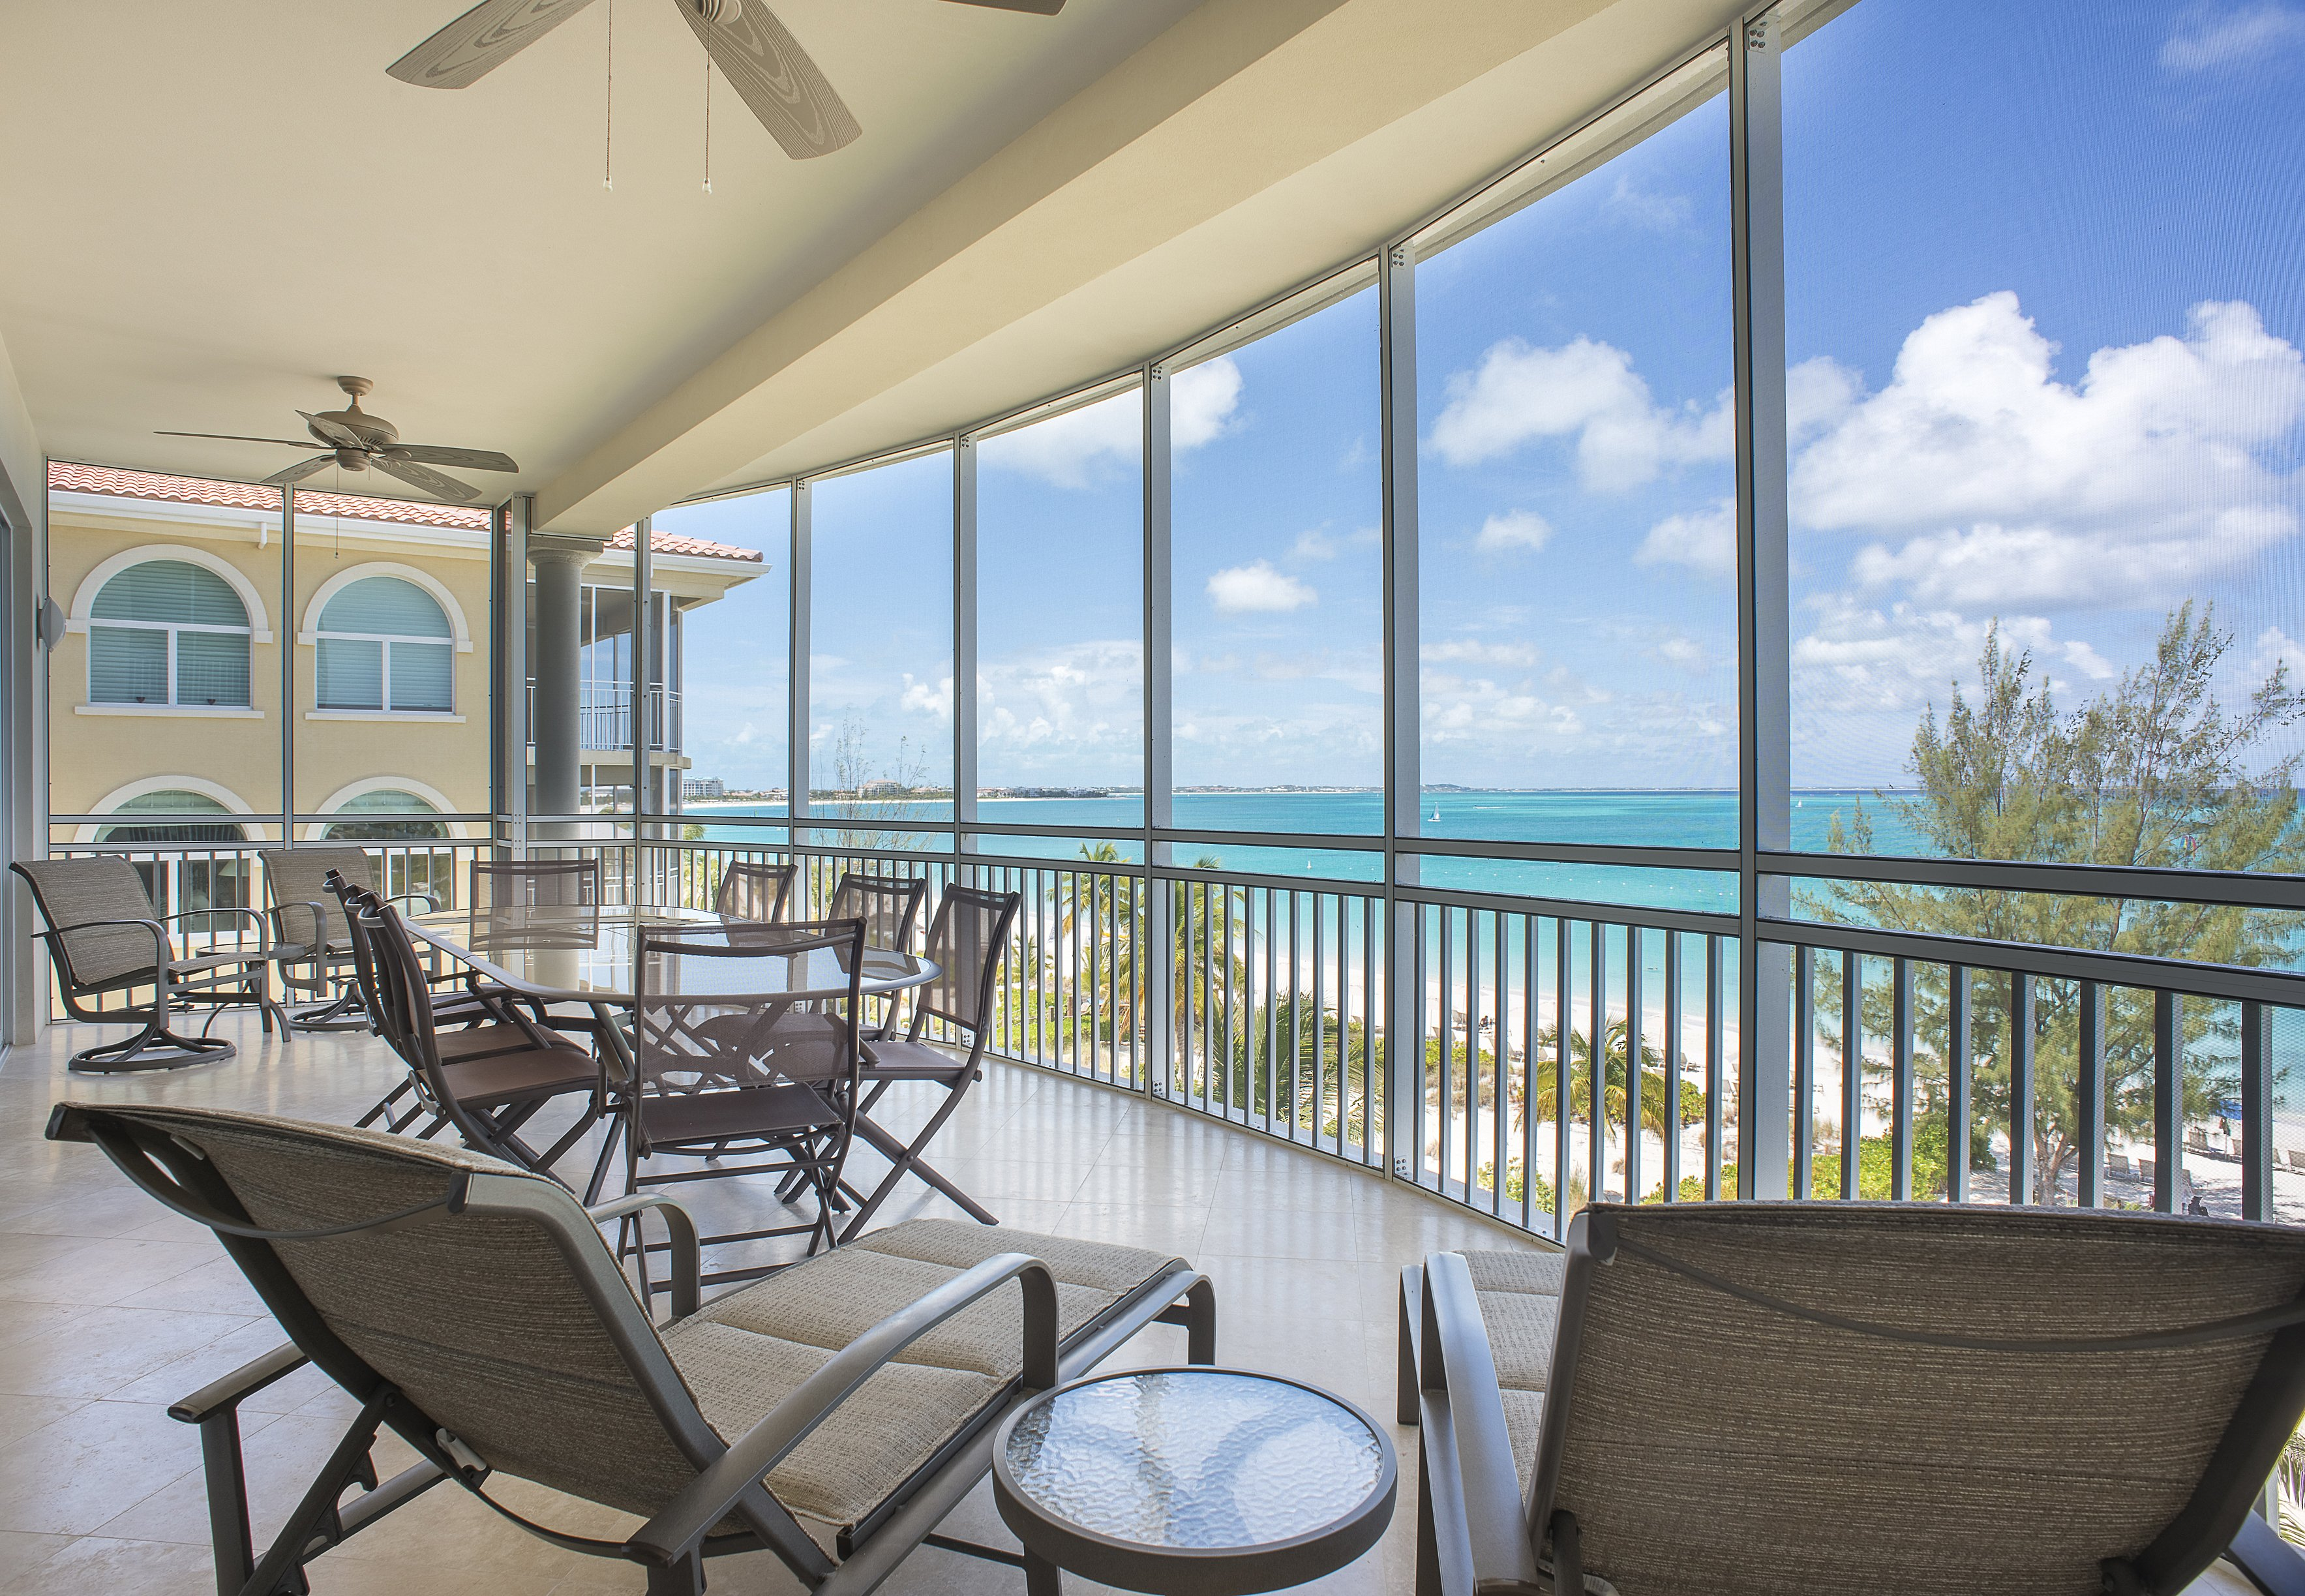 Plan Your Fall Getaway In Turks And Caicos… And Save 40%